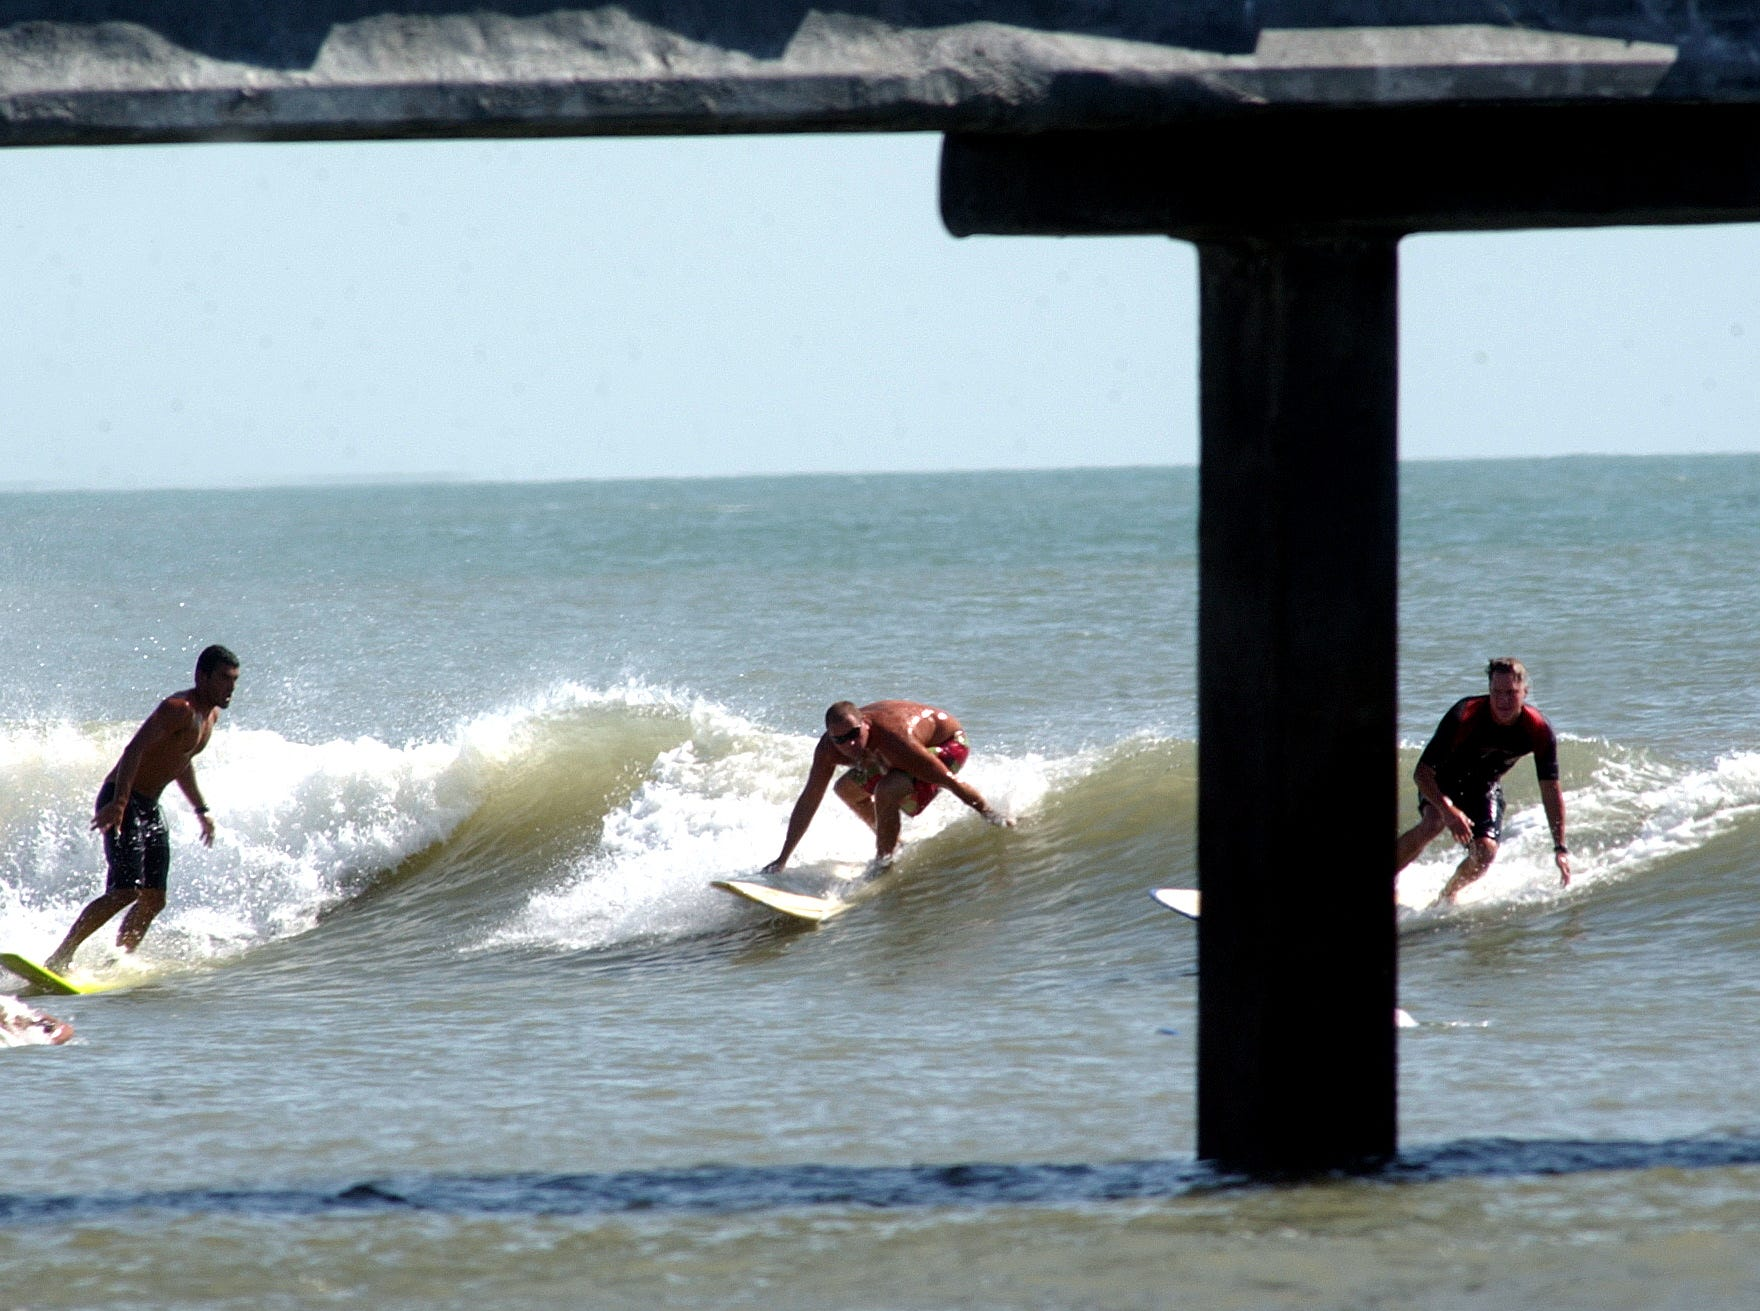 Surfers swarmed in and around Bob Hall Pier in Corpus Christi in the waves left over from Hurricane Rita on Saturday, Sept. 24, 2005.